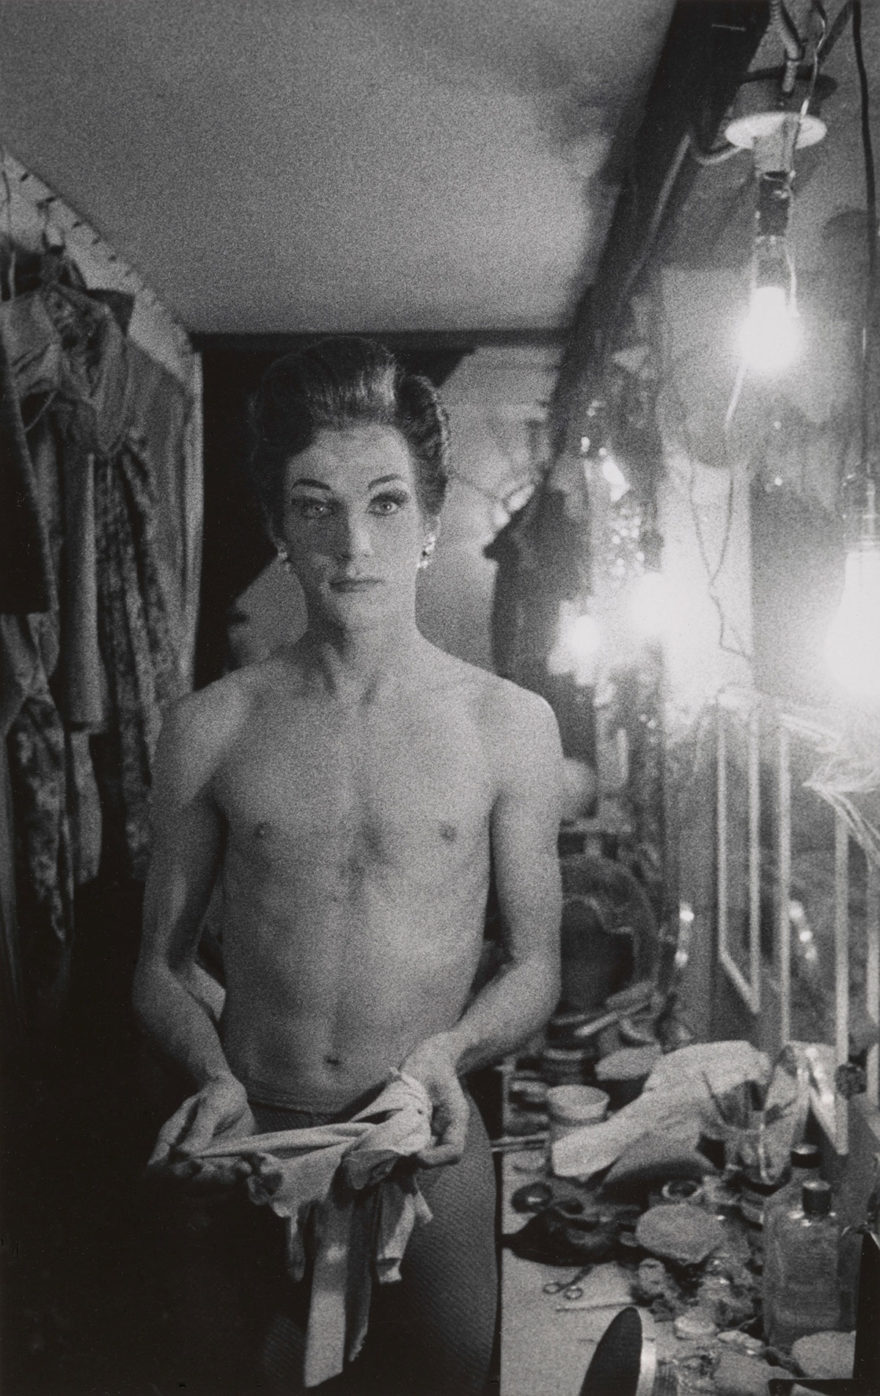 MONROWE, A Day with Diane Arbus